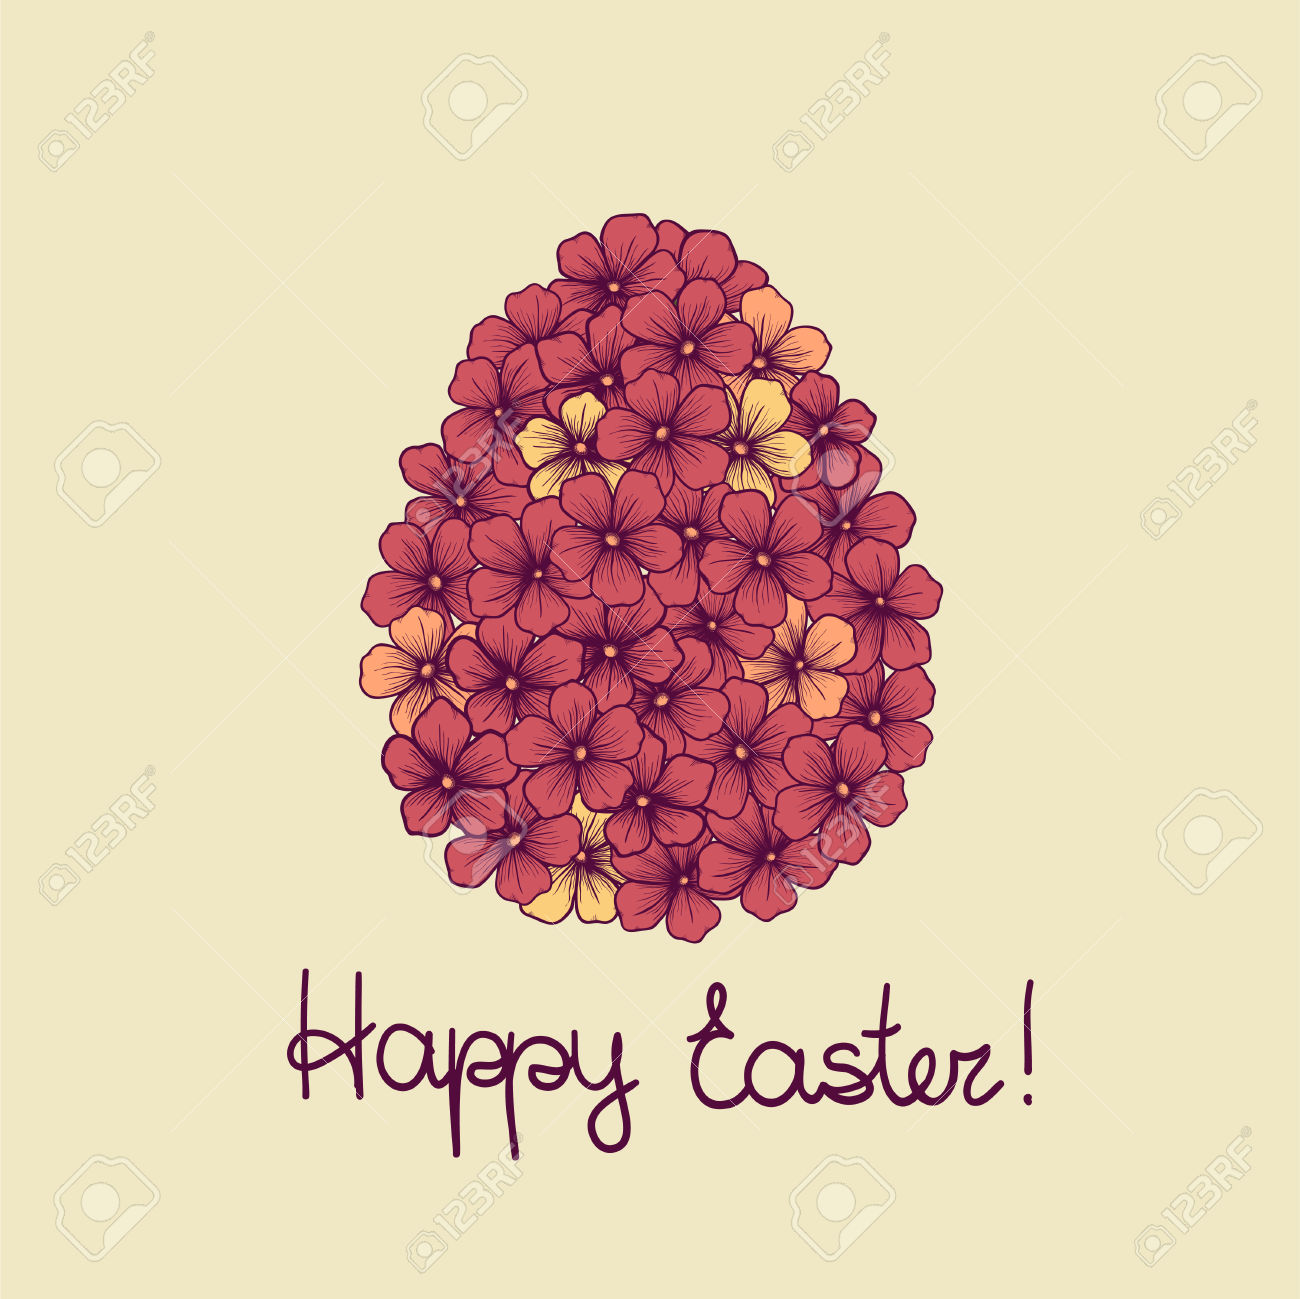 Easter Images Beautiful Easter Greeting Card Hd Wallpaper And